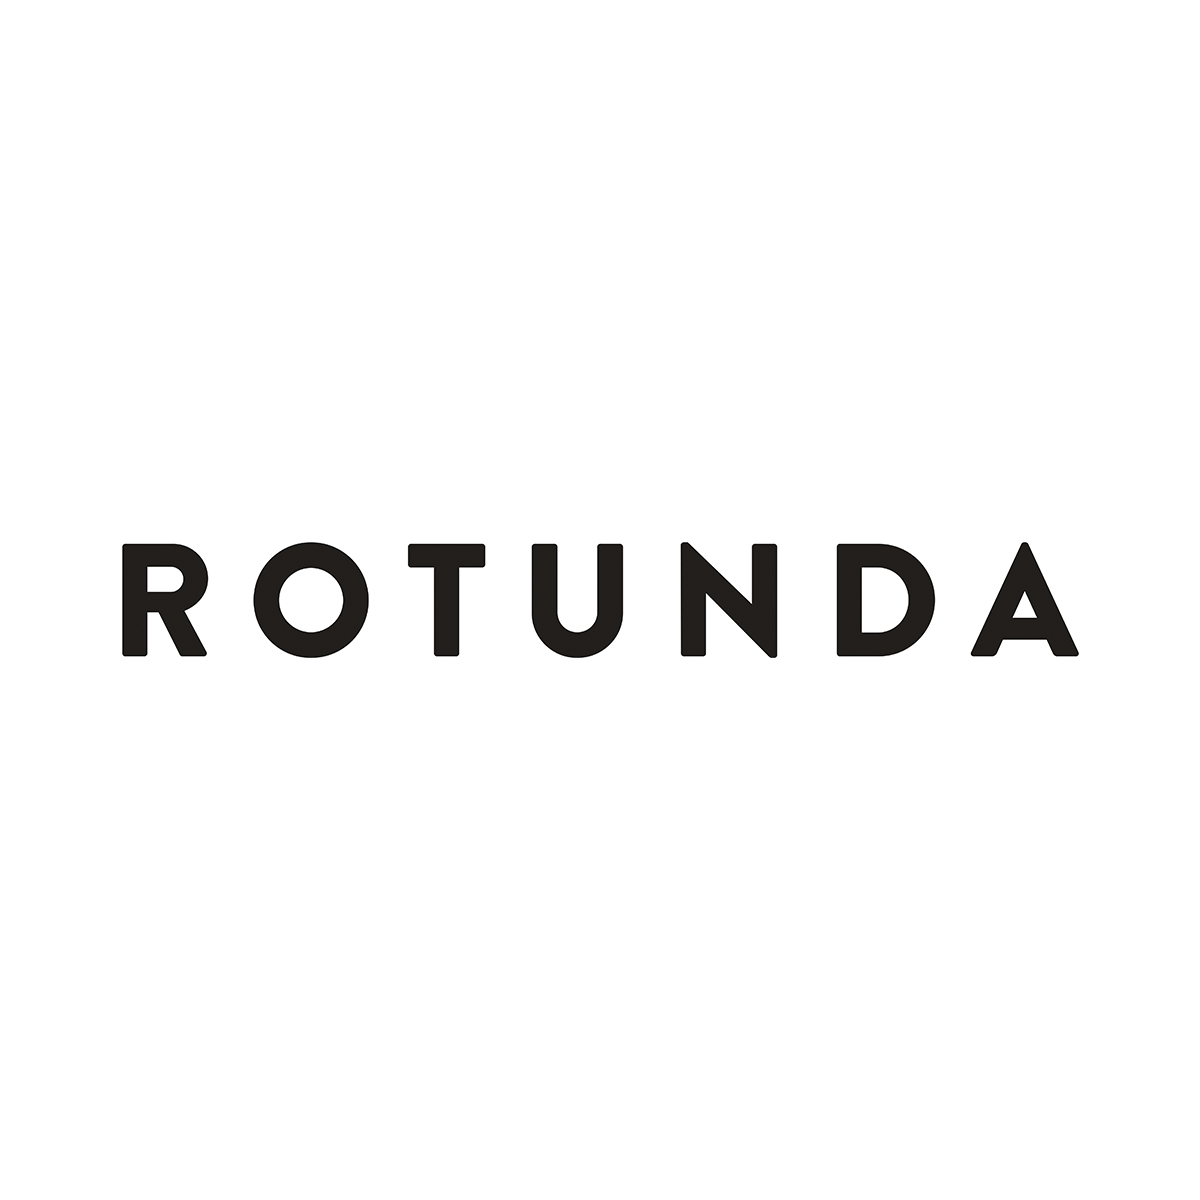 Rotunda   is a women's apparel brand based in Montevideo, Uruguay, founded in 2014 by two friends who love fashion. Their interest on different kinds of materials and silhouettes resulted in the creation of diverse clothing and accessories collections. Inspired by raw materials such as leather and wool, they developed a minimalist concept that is found throughout their pieces.